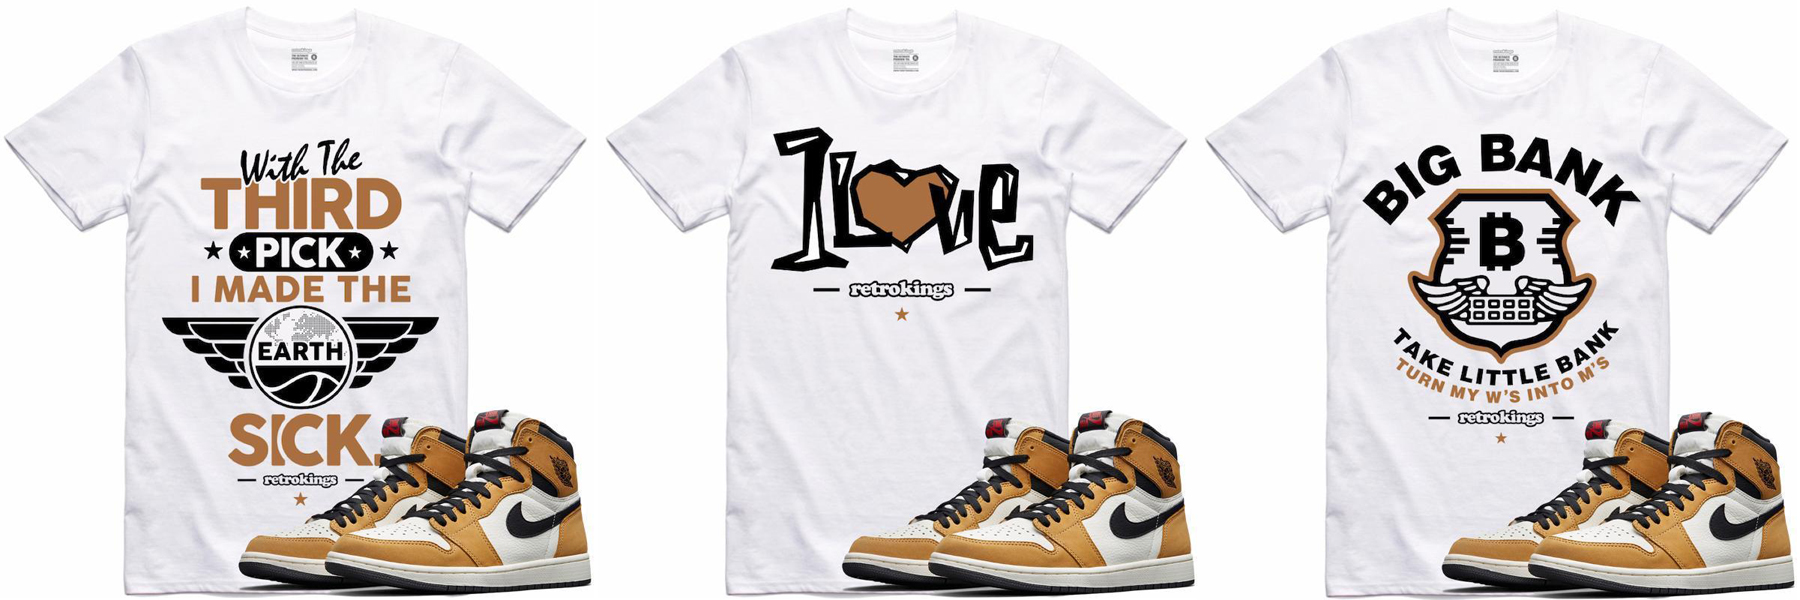 ef95d970369 Jordan 1 Rookie of the Year Sneaker Tees | SneakerFits.com